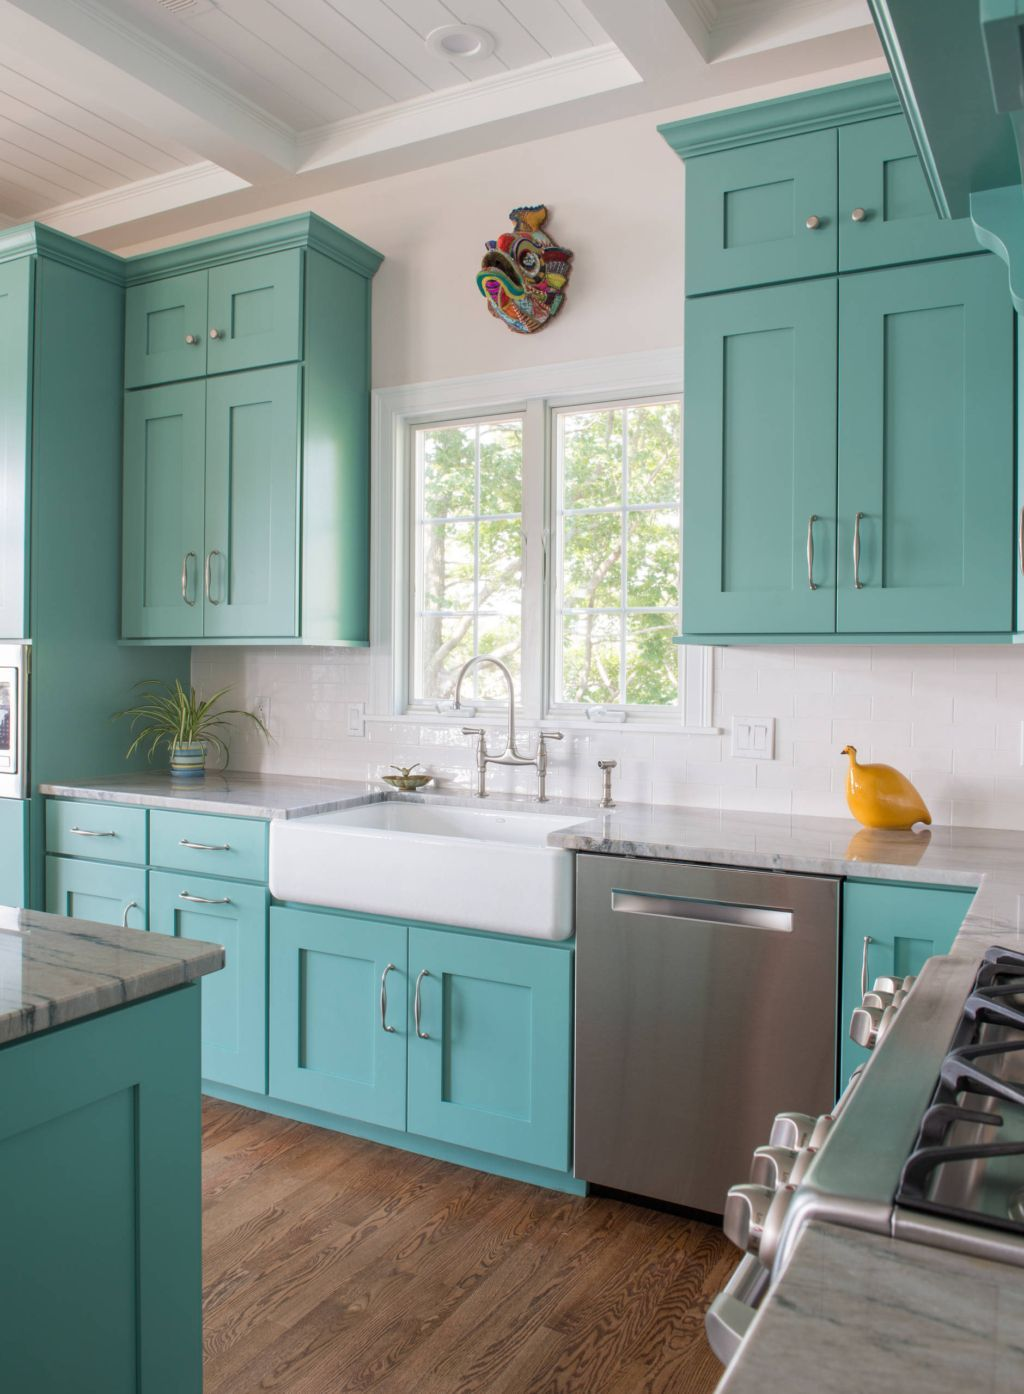 Mikayla Valois – Riverhead Building Supply | Turquoise kitchen ...